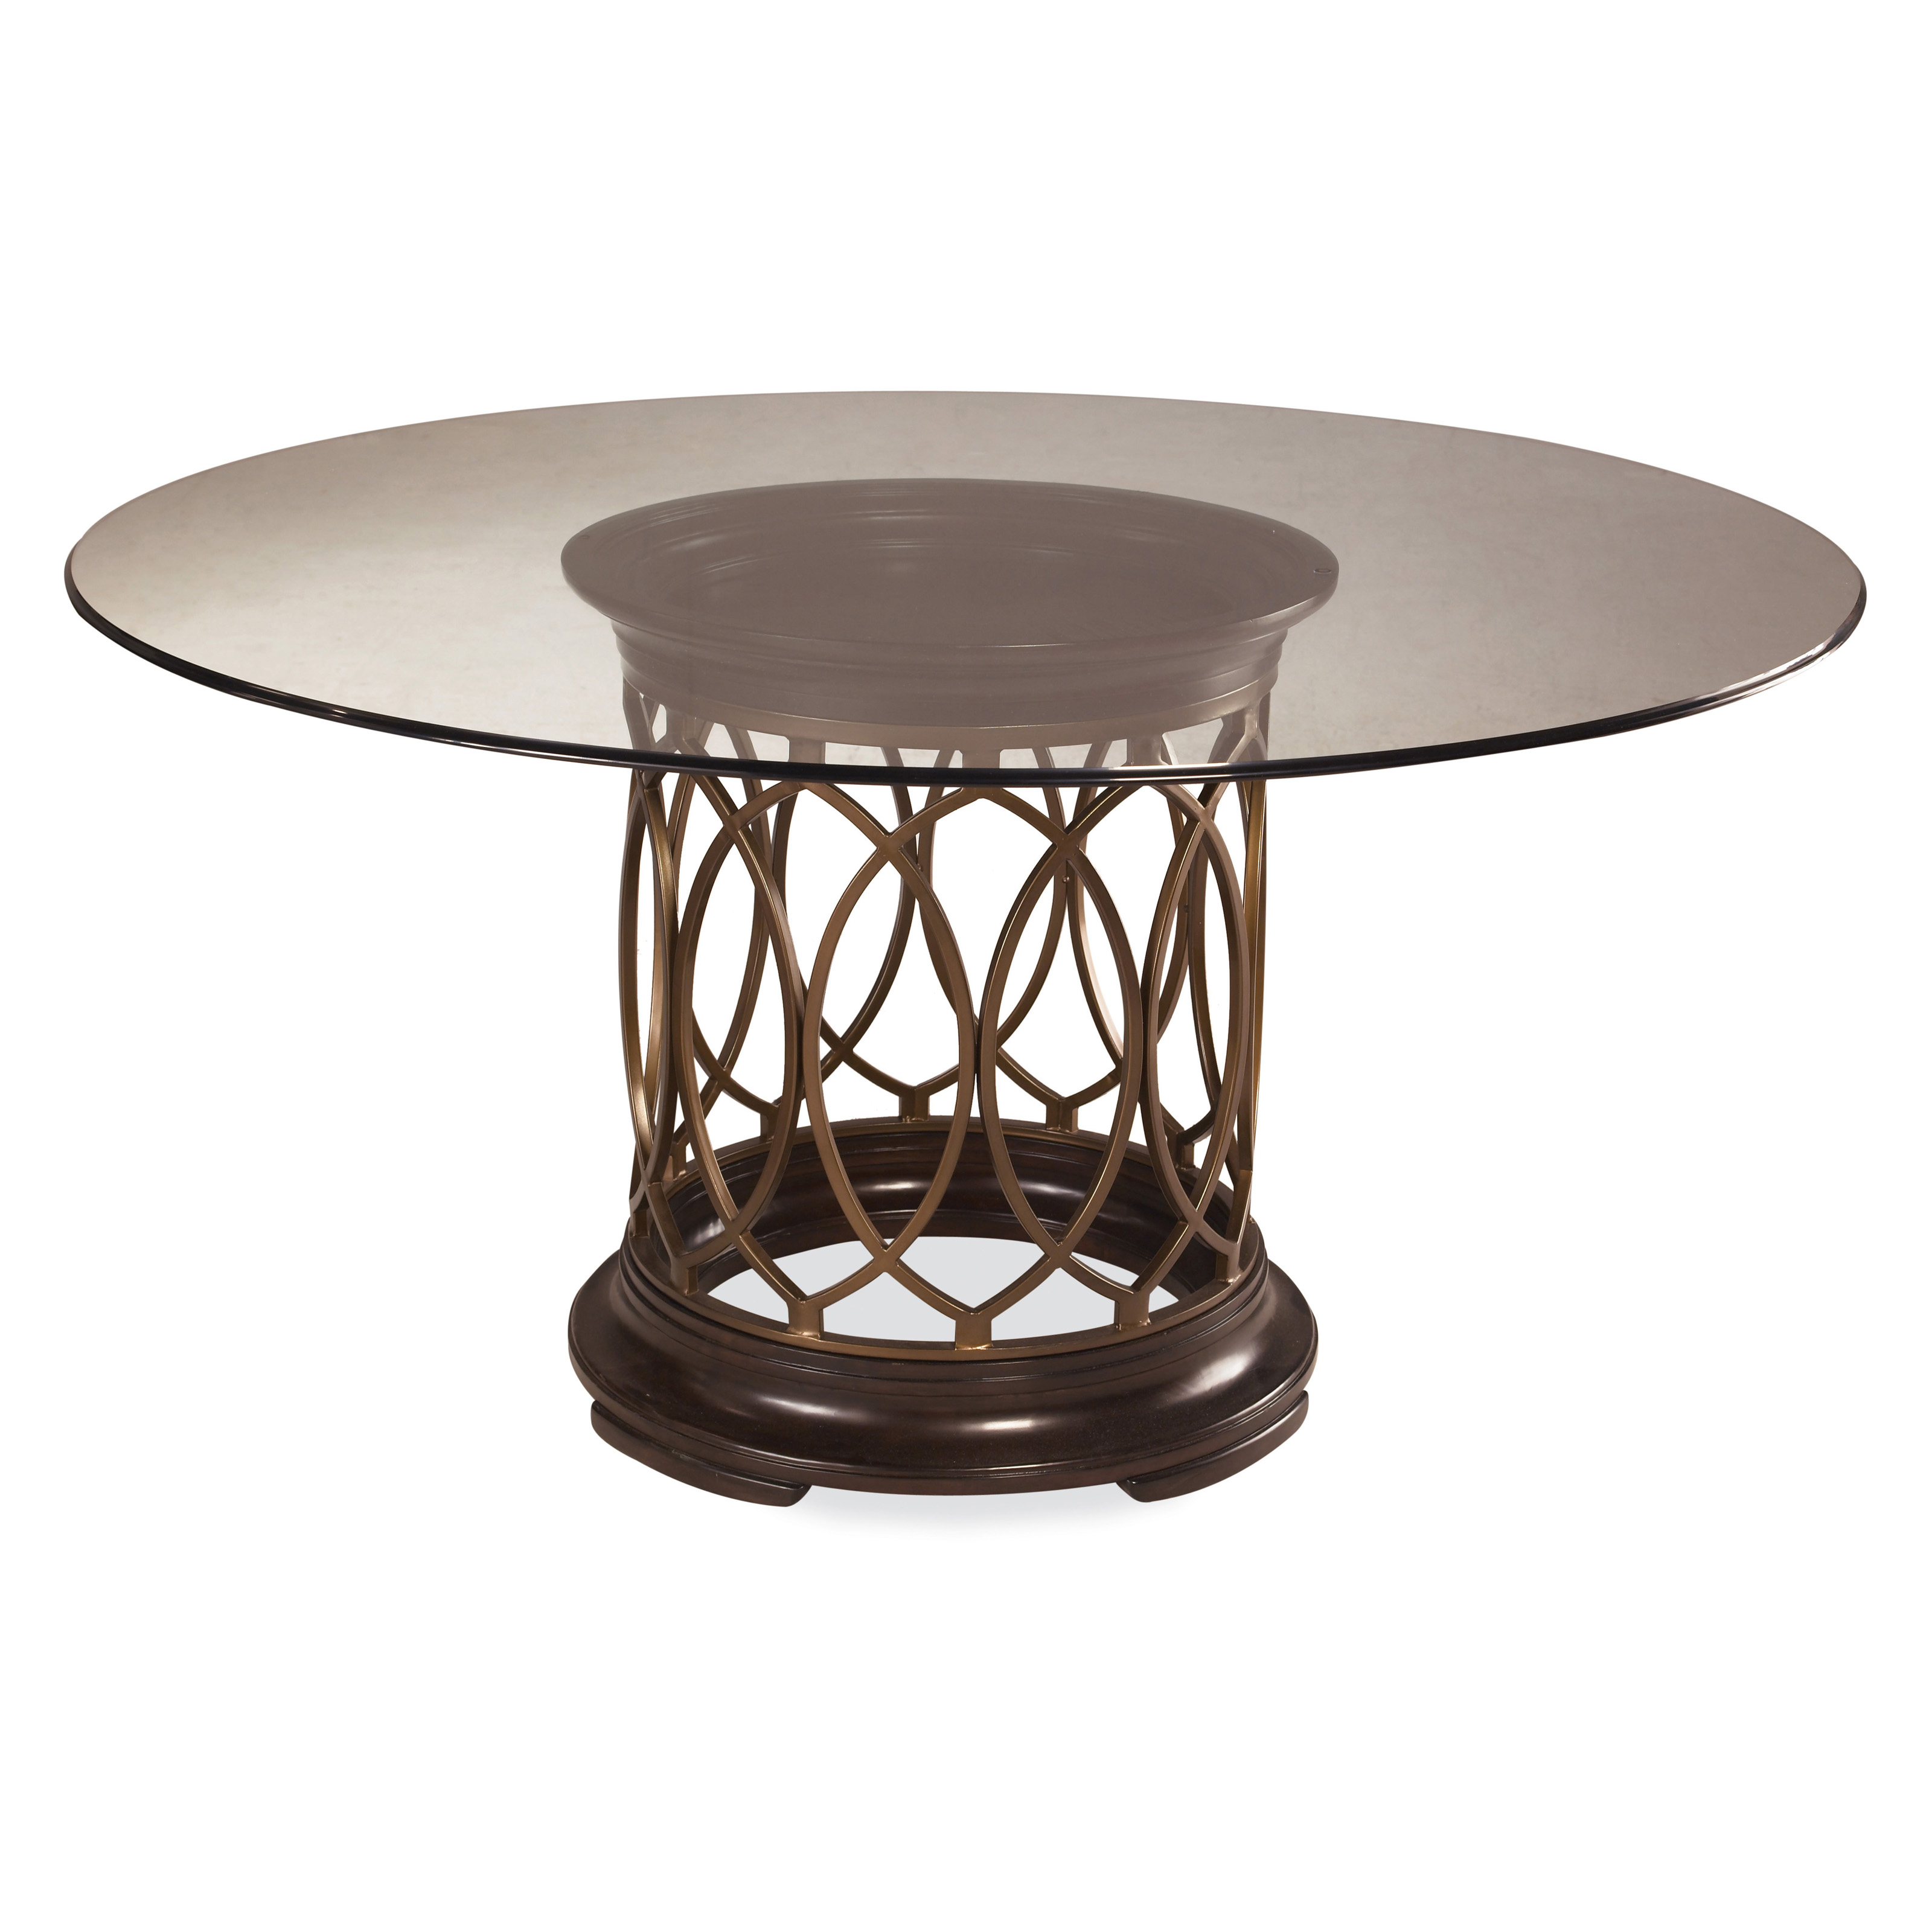 A.R.T. Furniture Intrigue Glass Top Round Dining Table   Dark Wood With  Maple Stringer Inlay | Hayneedle